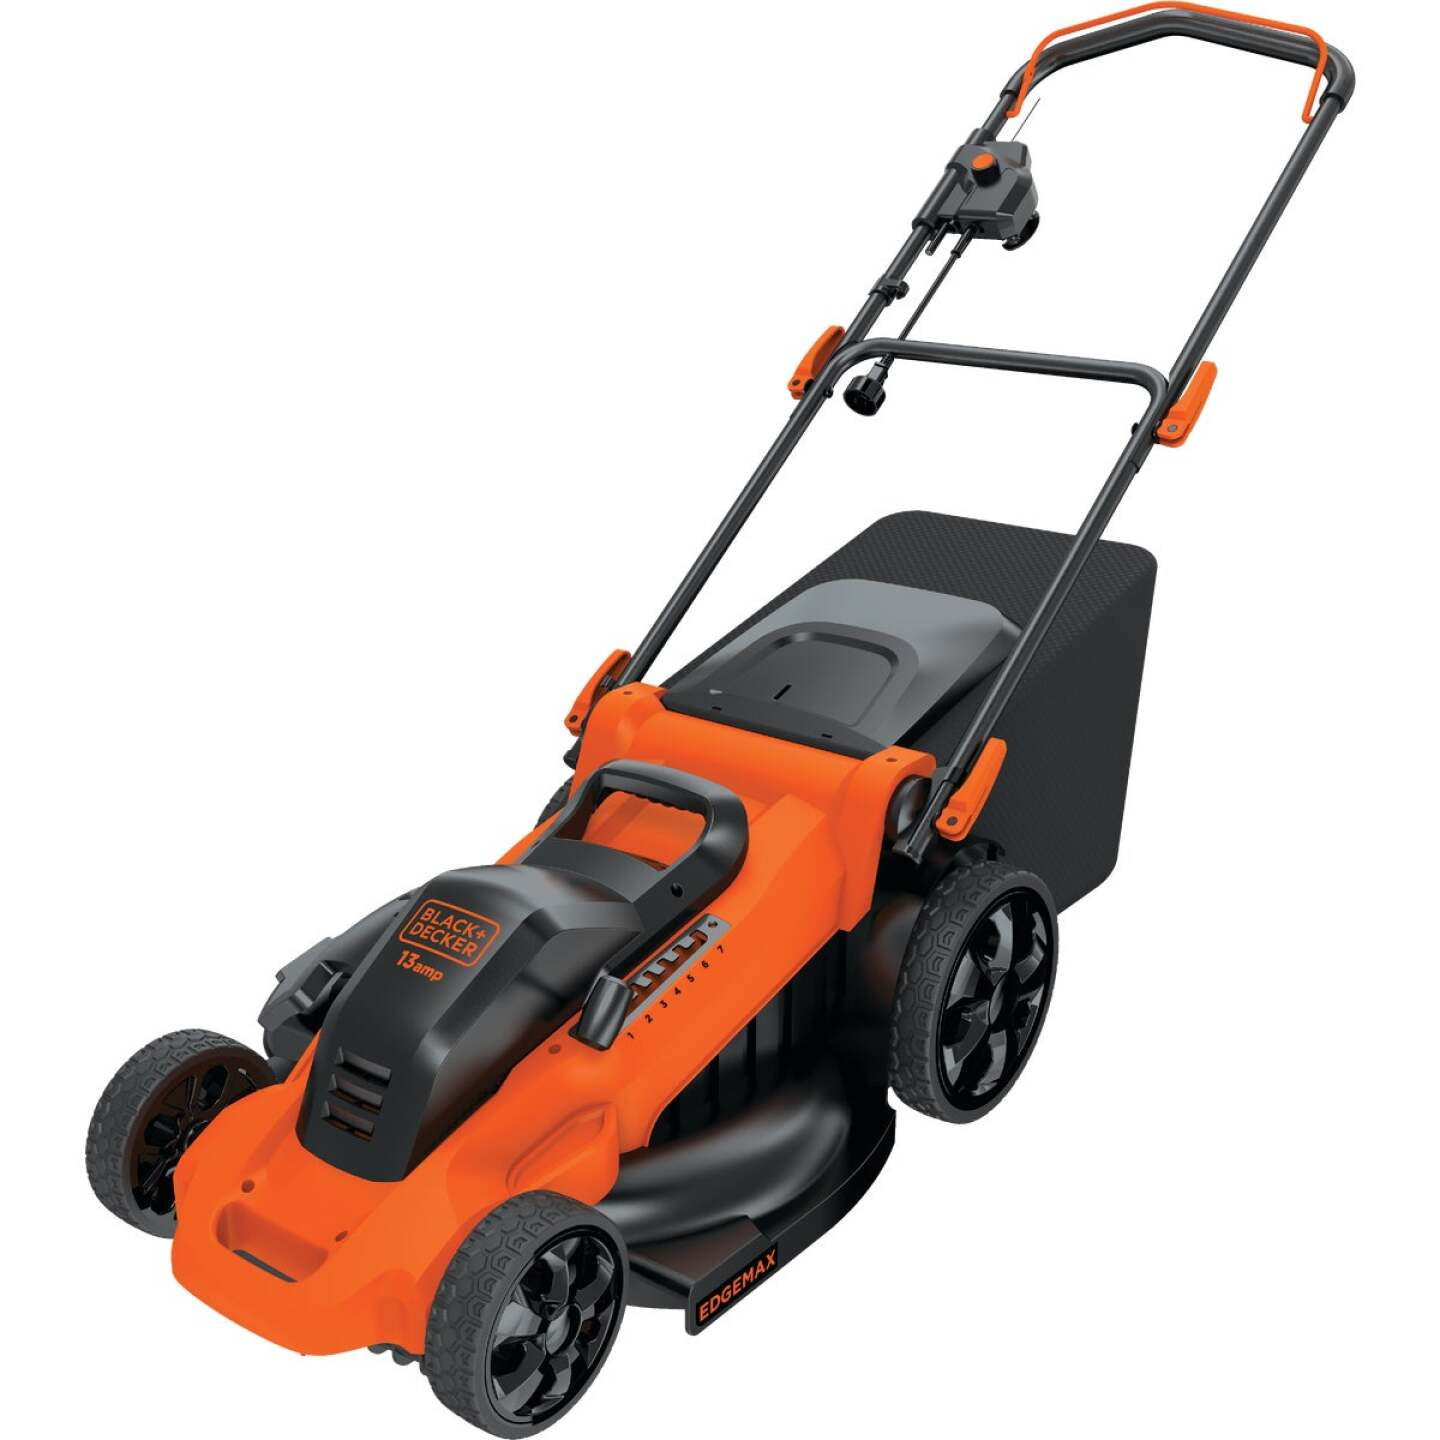 Black & Decker 20 In. 13A Push Electric Lawn Mower Image 8